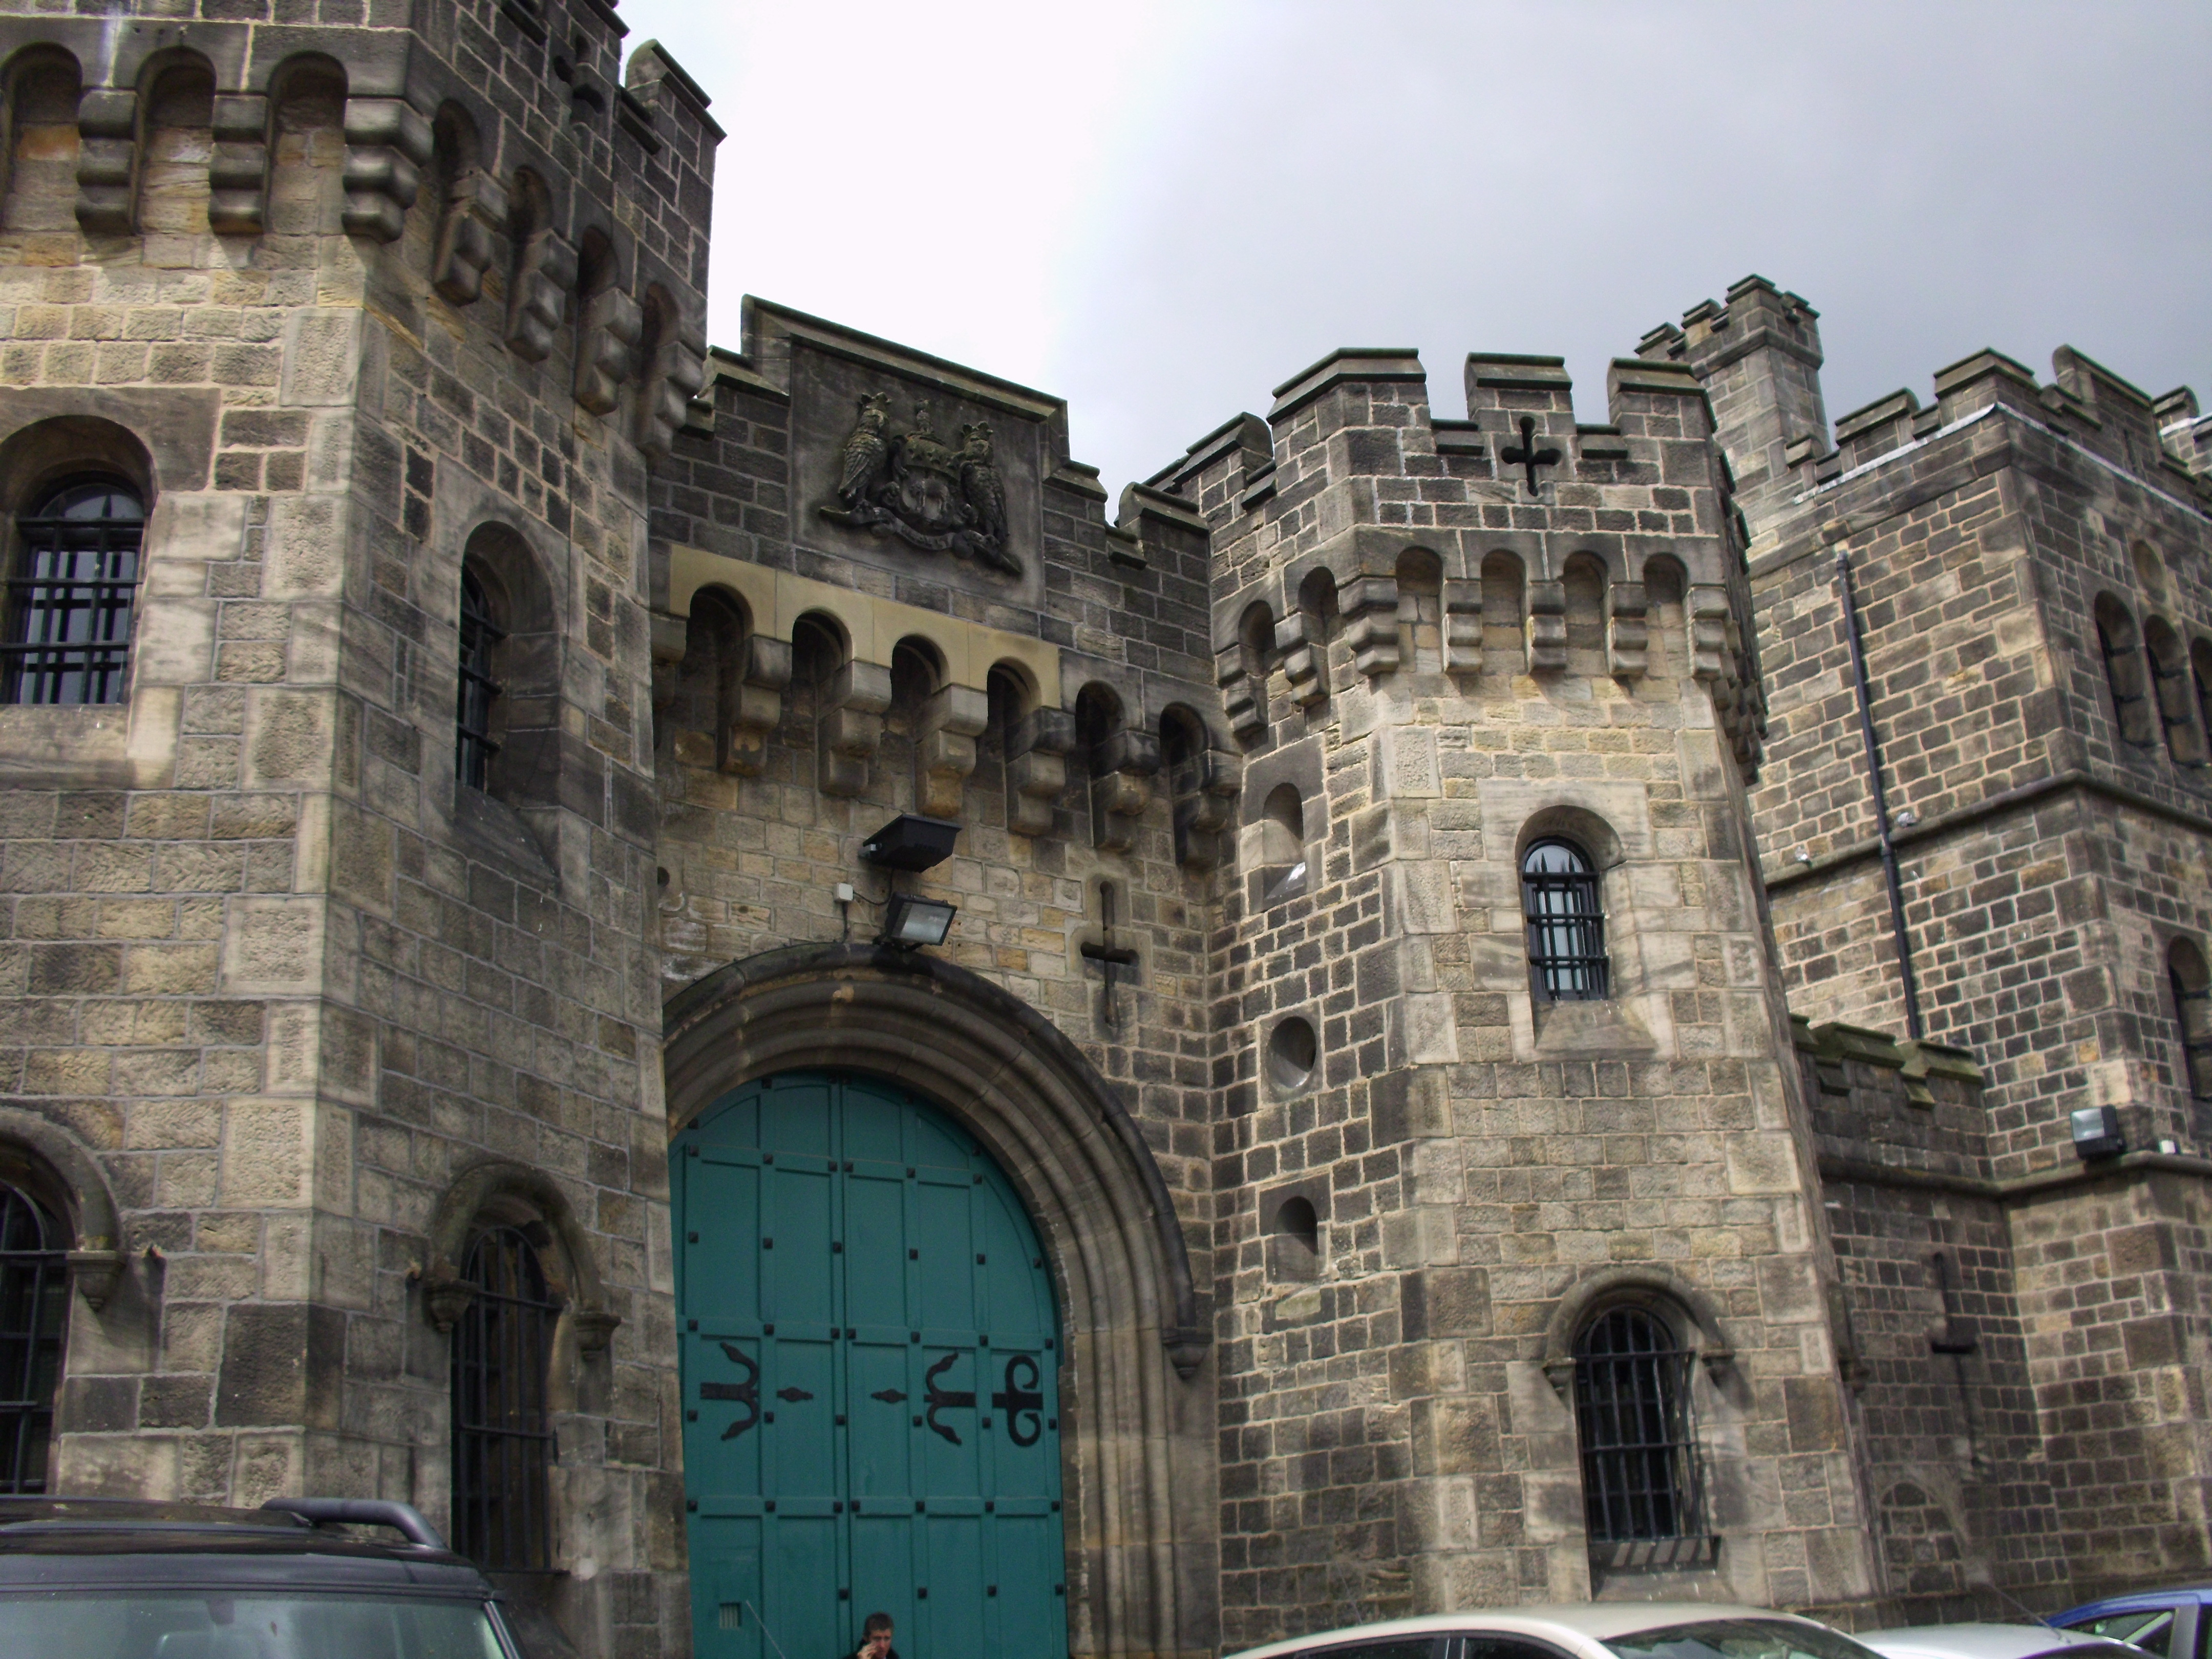 Armley Jail (Image source: Wikipedia)